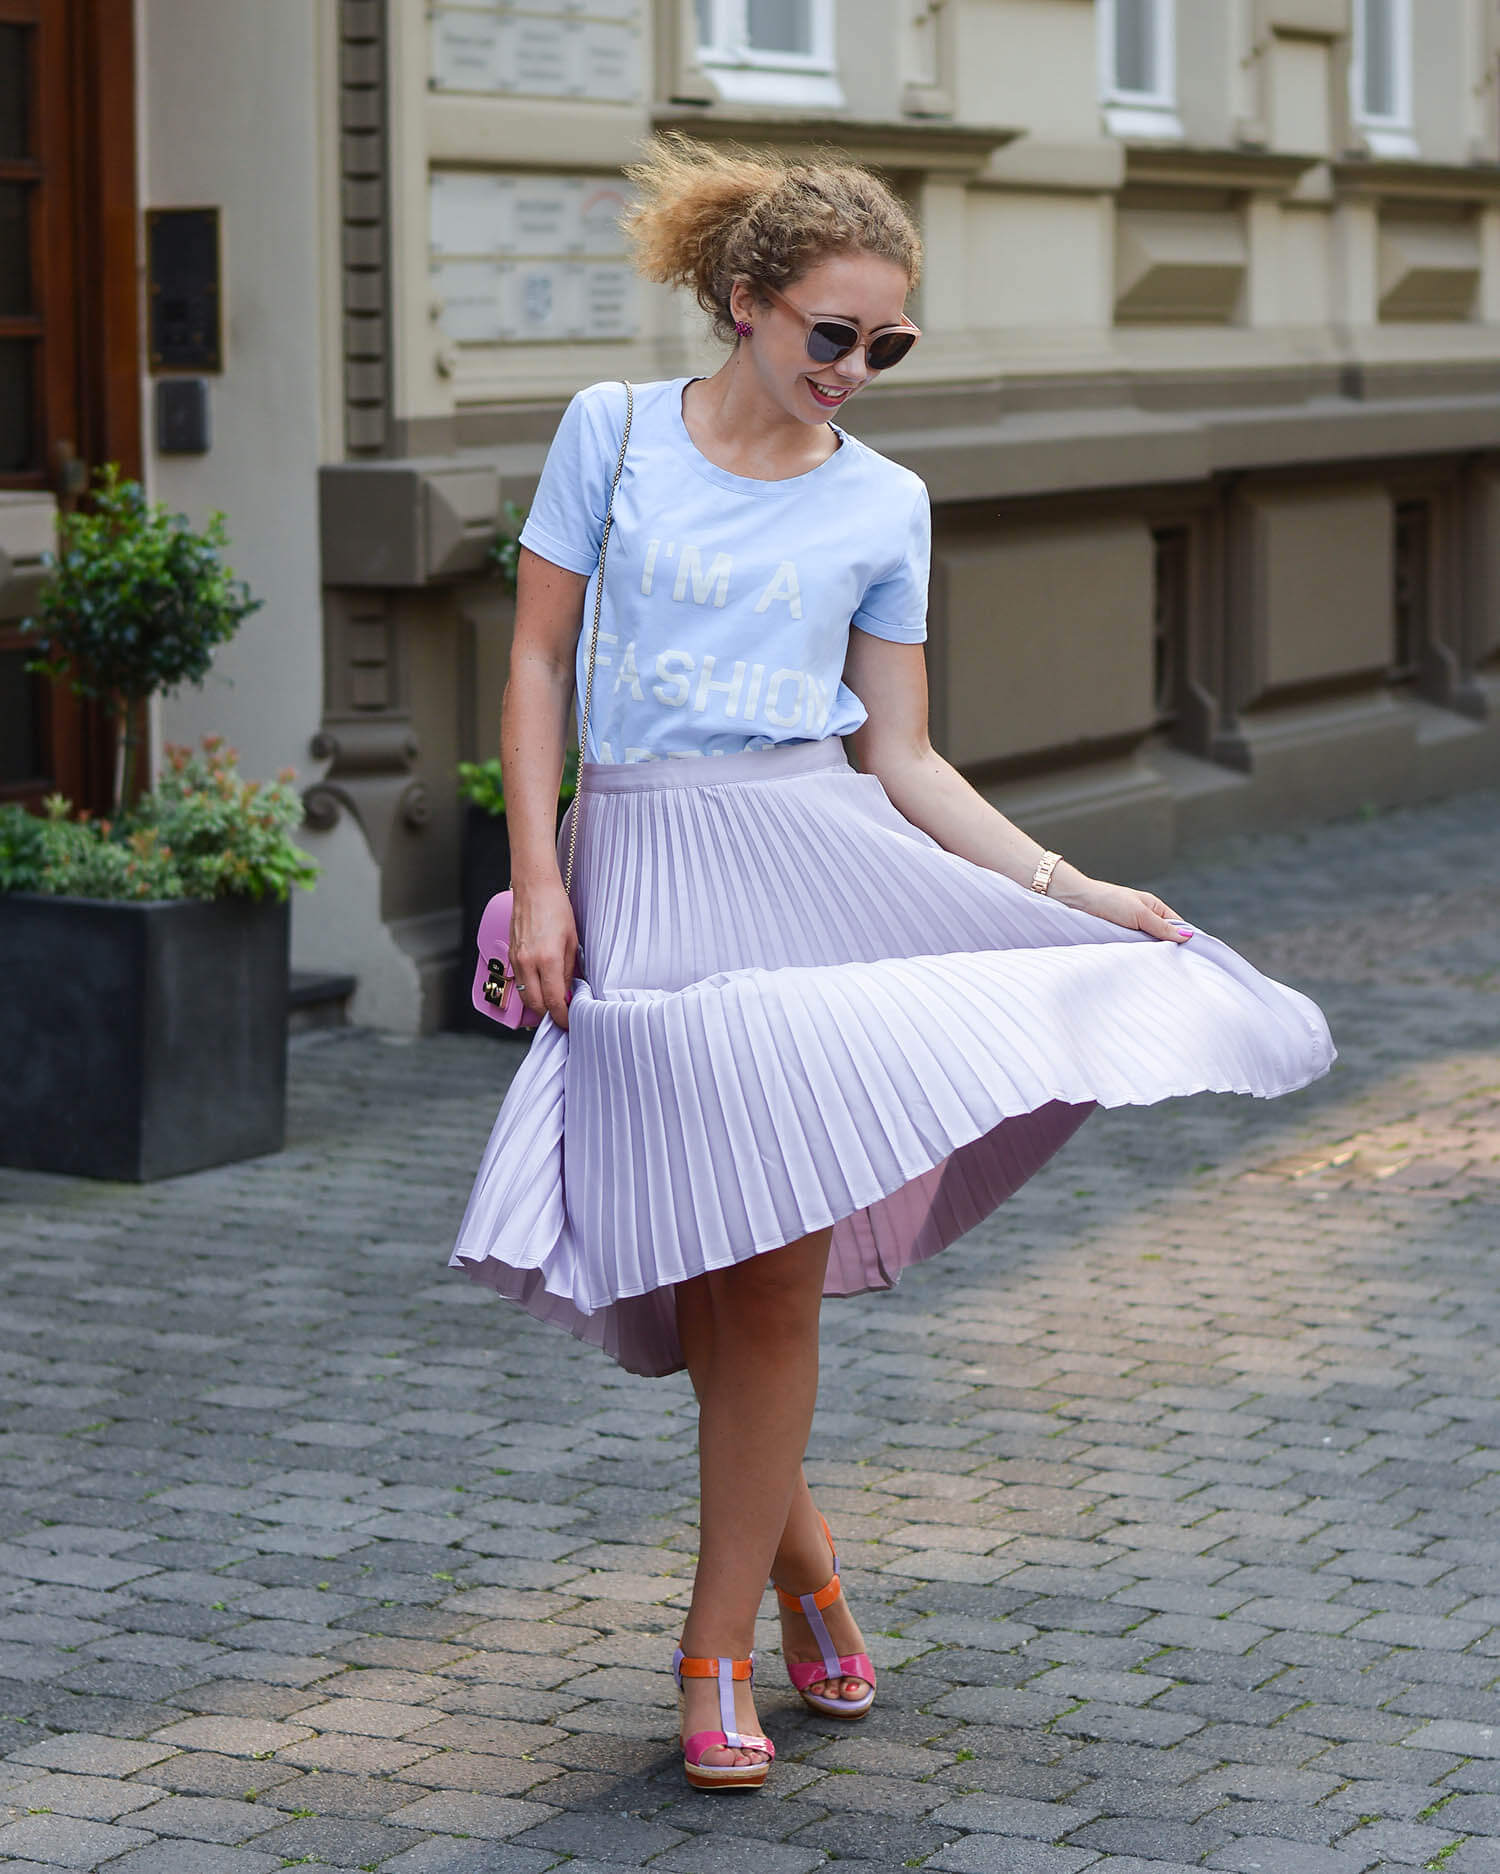 Summer-Outfit-Pastel-Pleated-Skirt-Babyblue-Tee-Wedges-and-Furla-Metropolis-Kationette-Fashionblogger-NRW